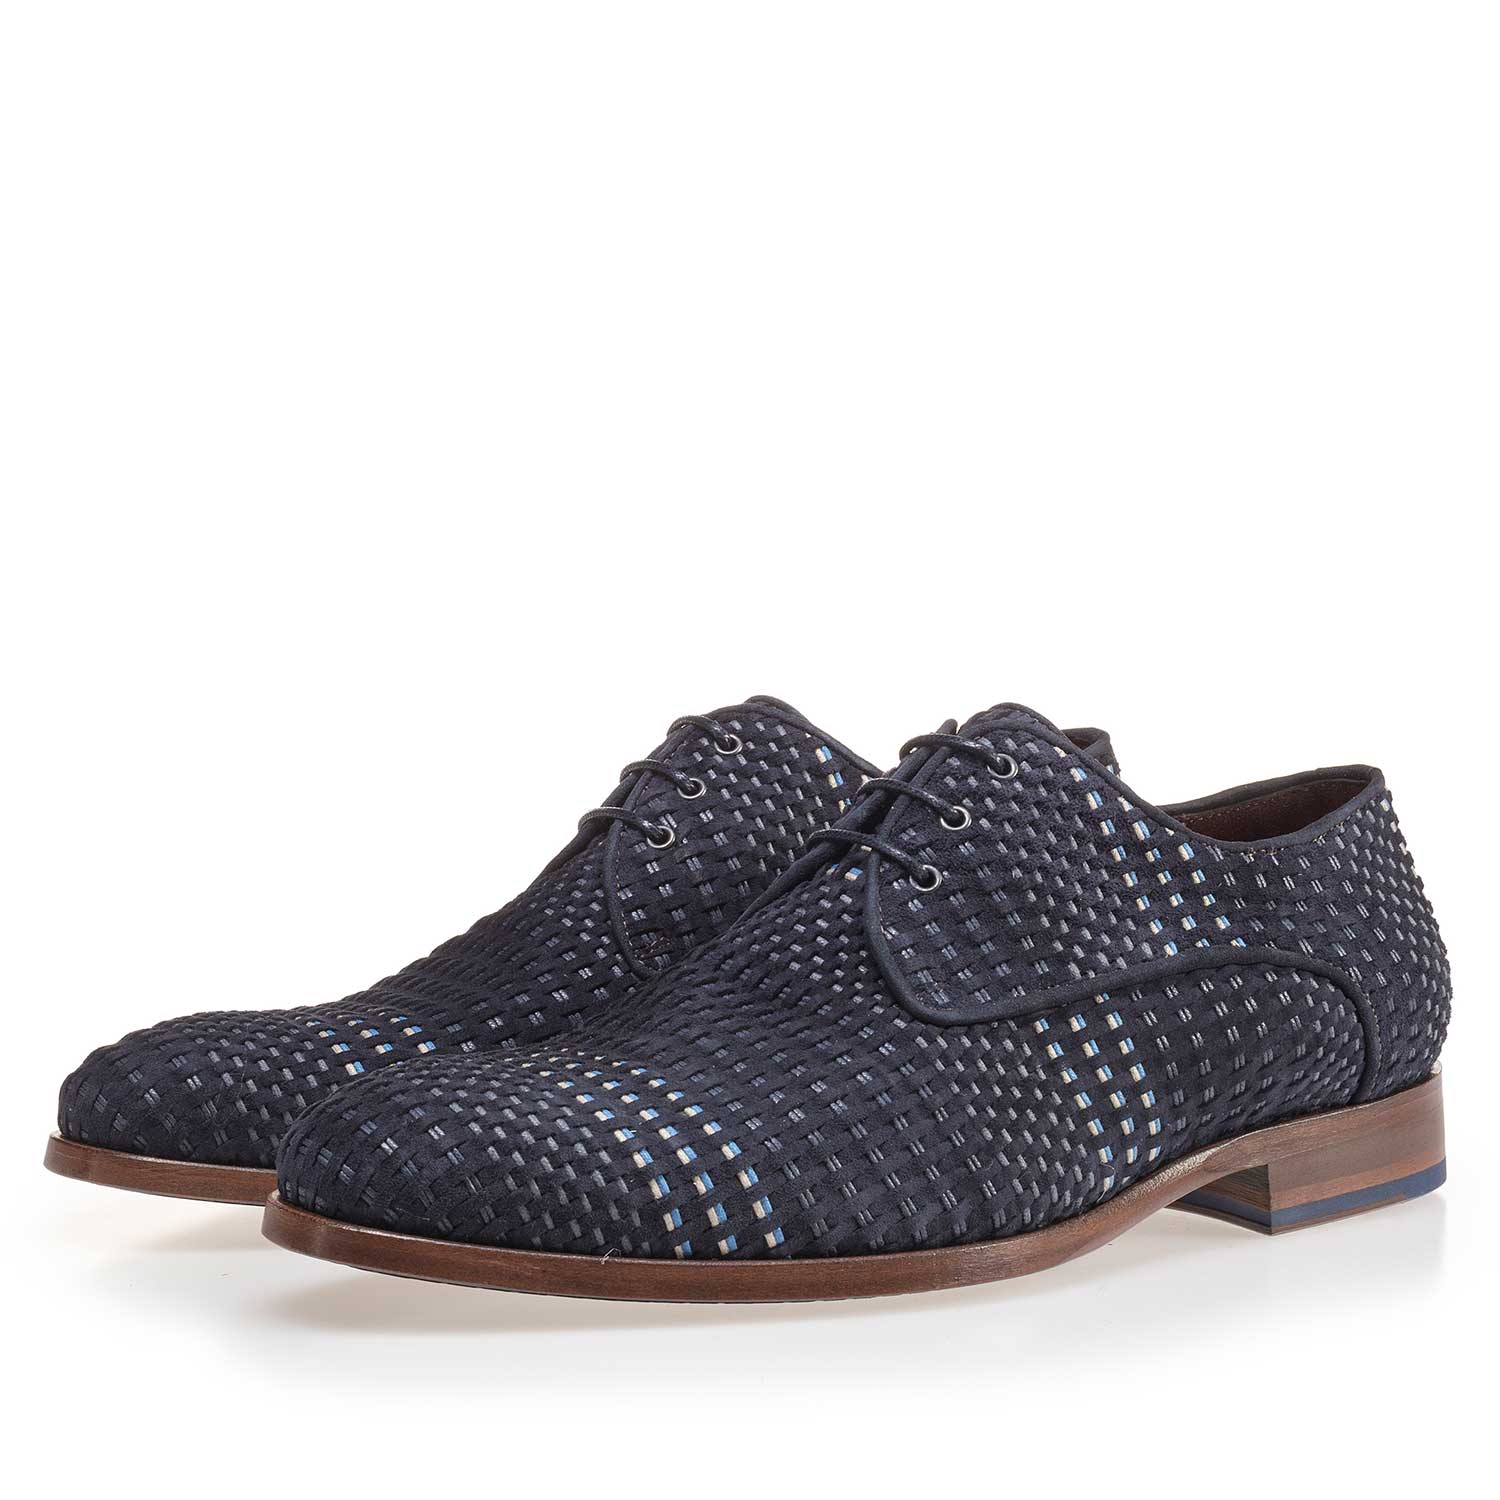 14210/00 - Dark blue lace shoe made of braided leather